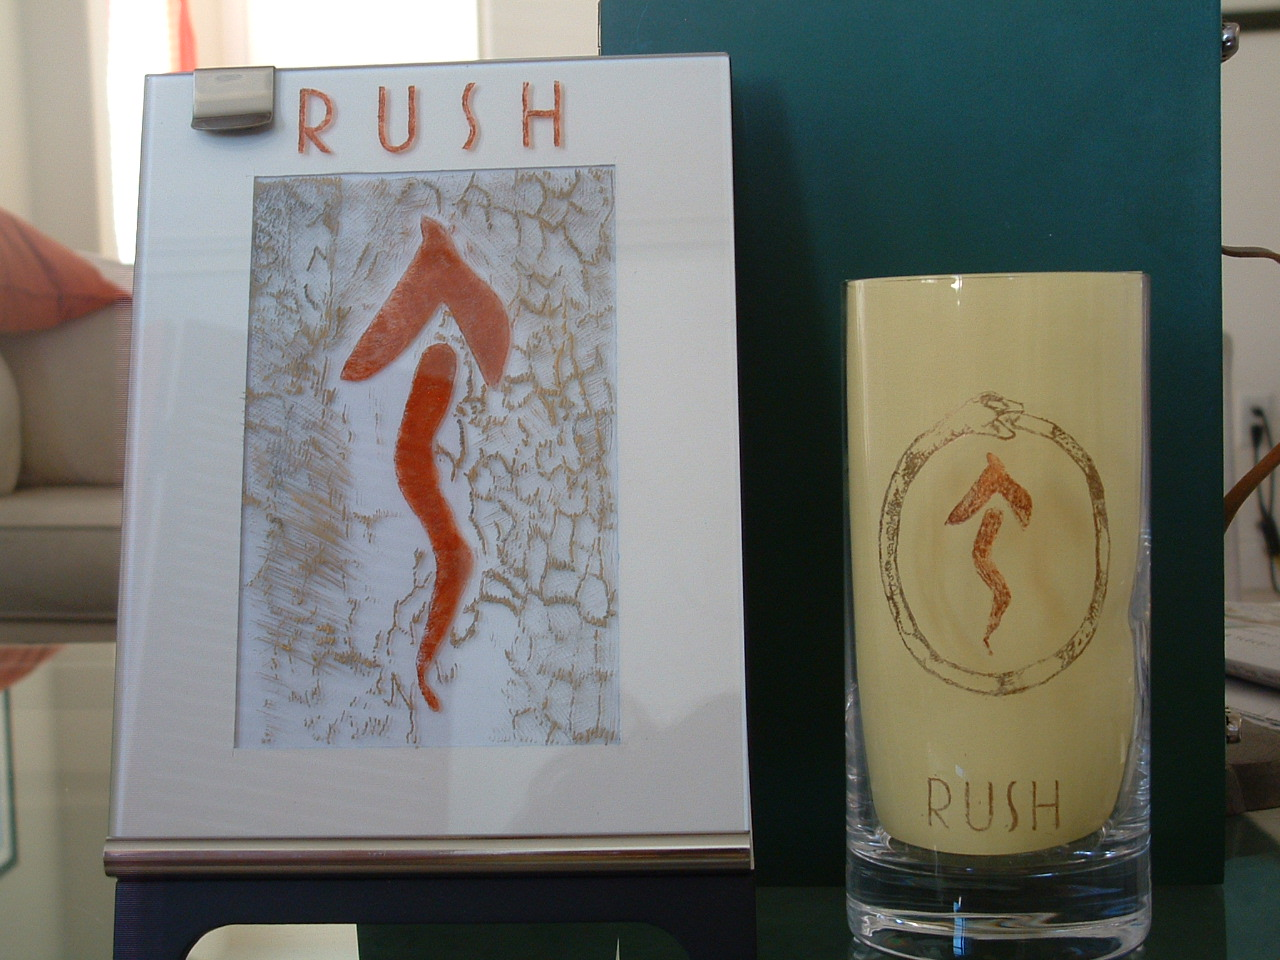 """From """"Snakes & Arrows"""" by the band RUSH"""